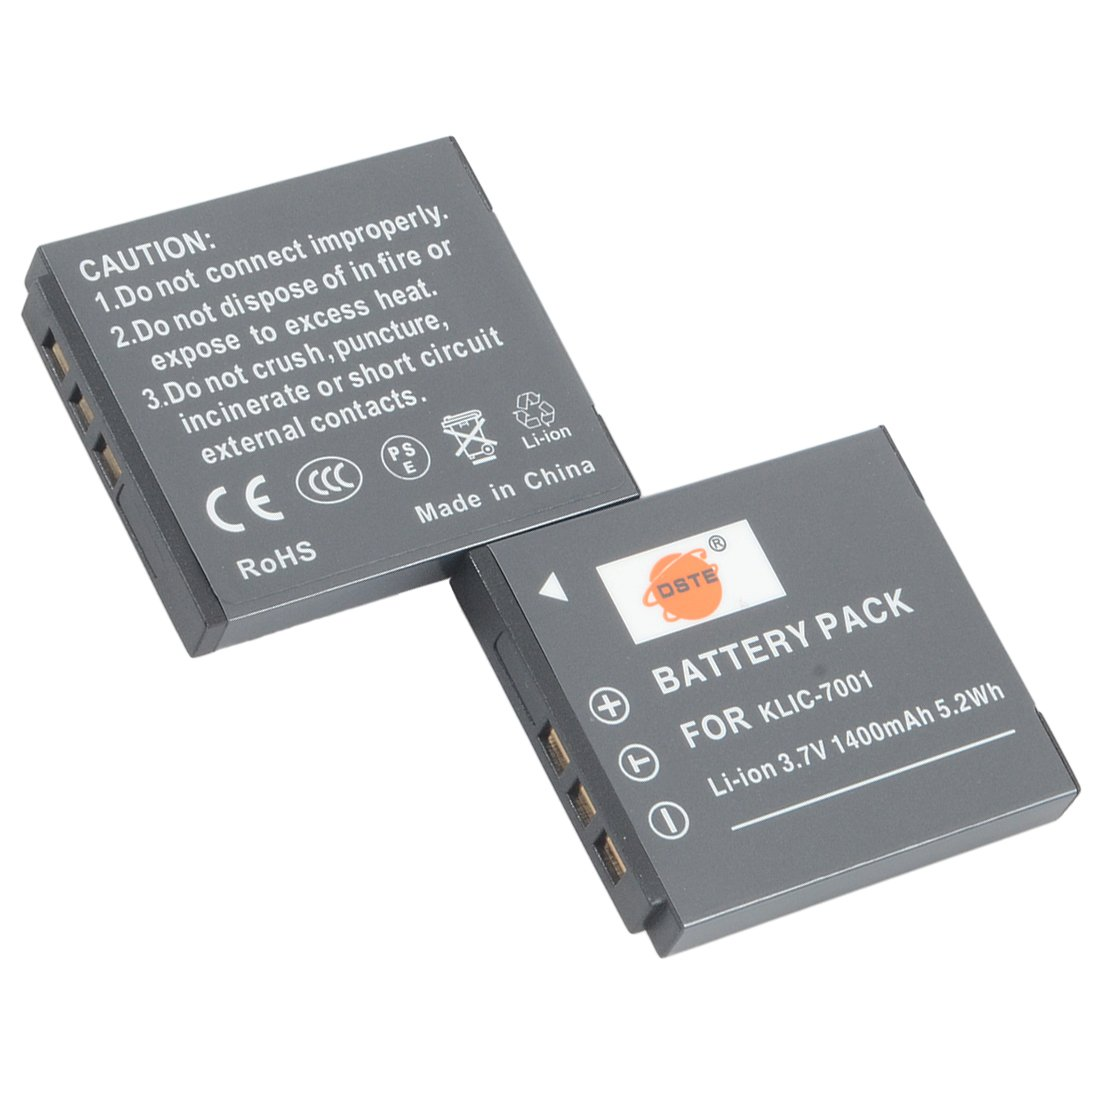 DSTE Replacement for 2X KLIC-7001 Li-ion Battery Compatible Kodak Easyshare V550 V570 V610 V705 M753 M763 M853 M863 M893 M1063 M1073 M340 M341 M320 M1013 is Camera